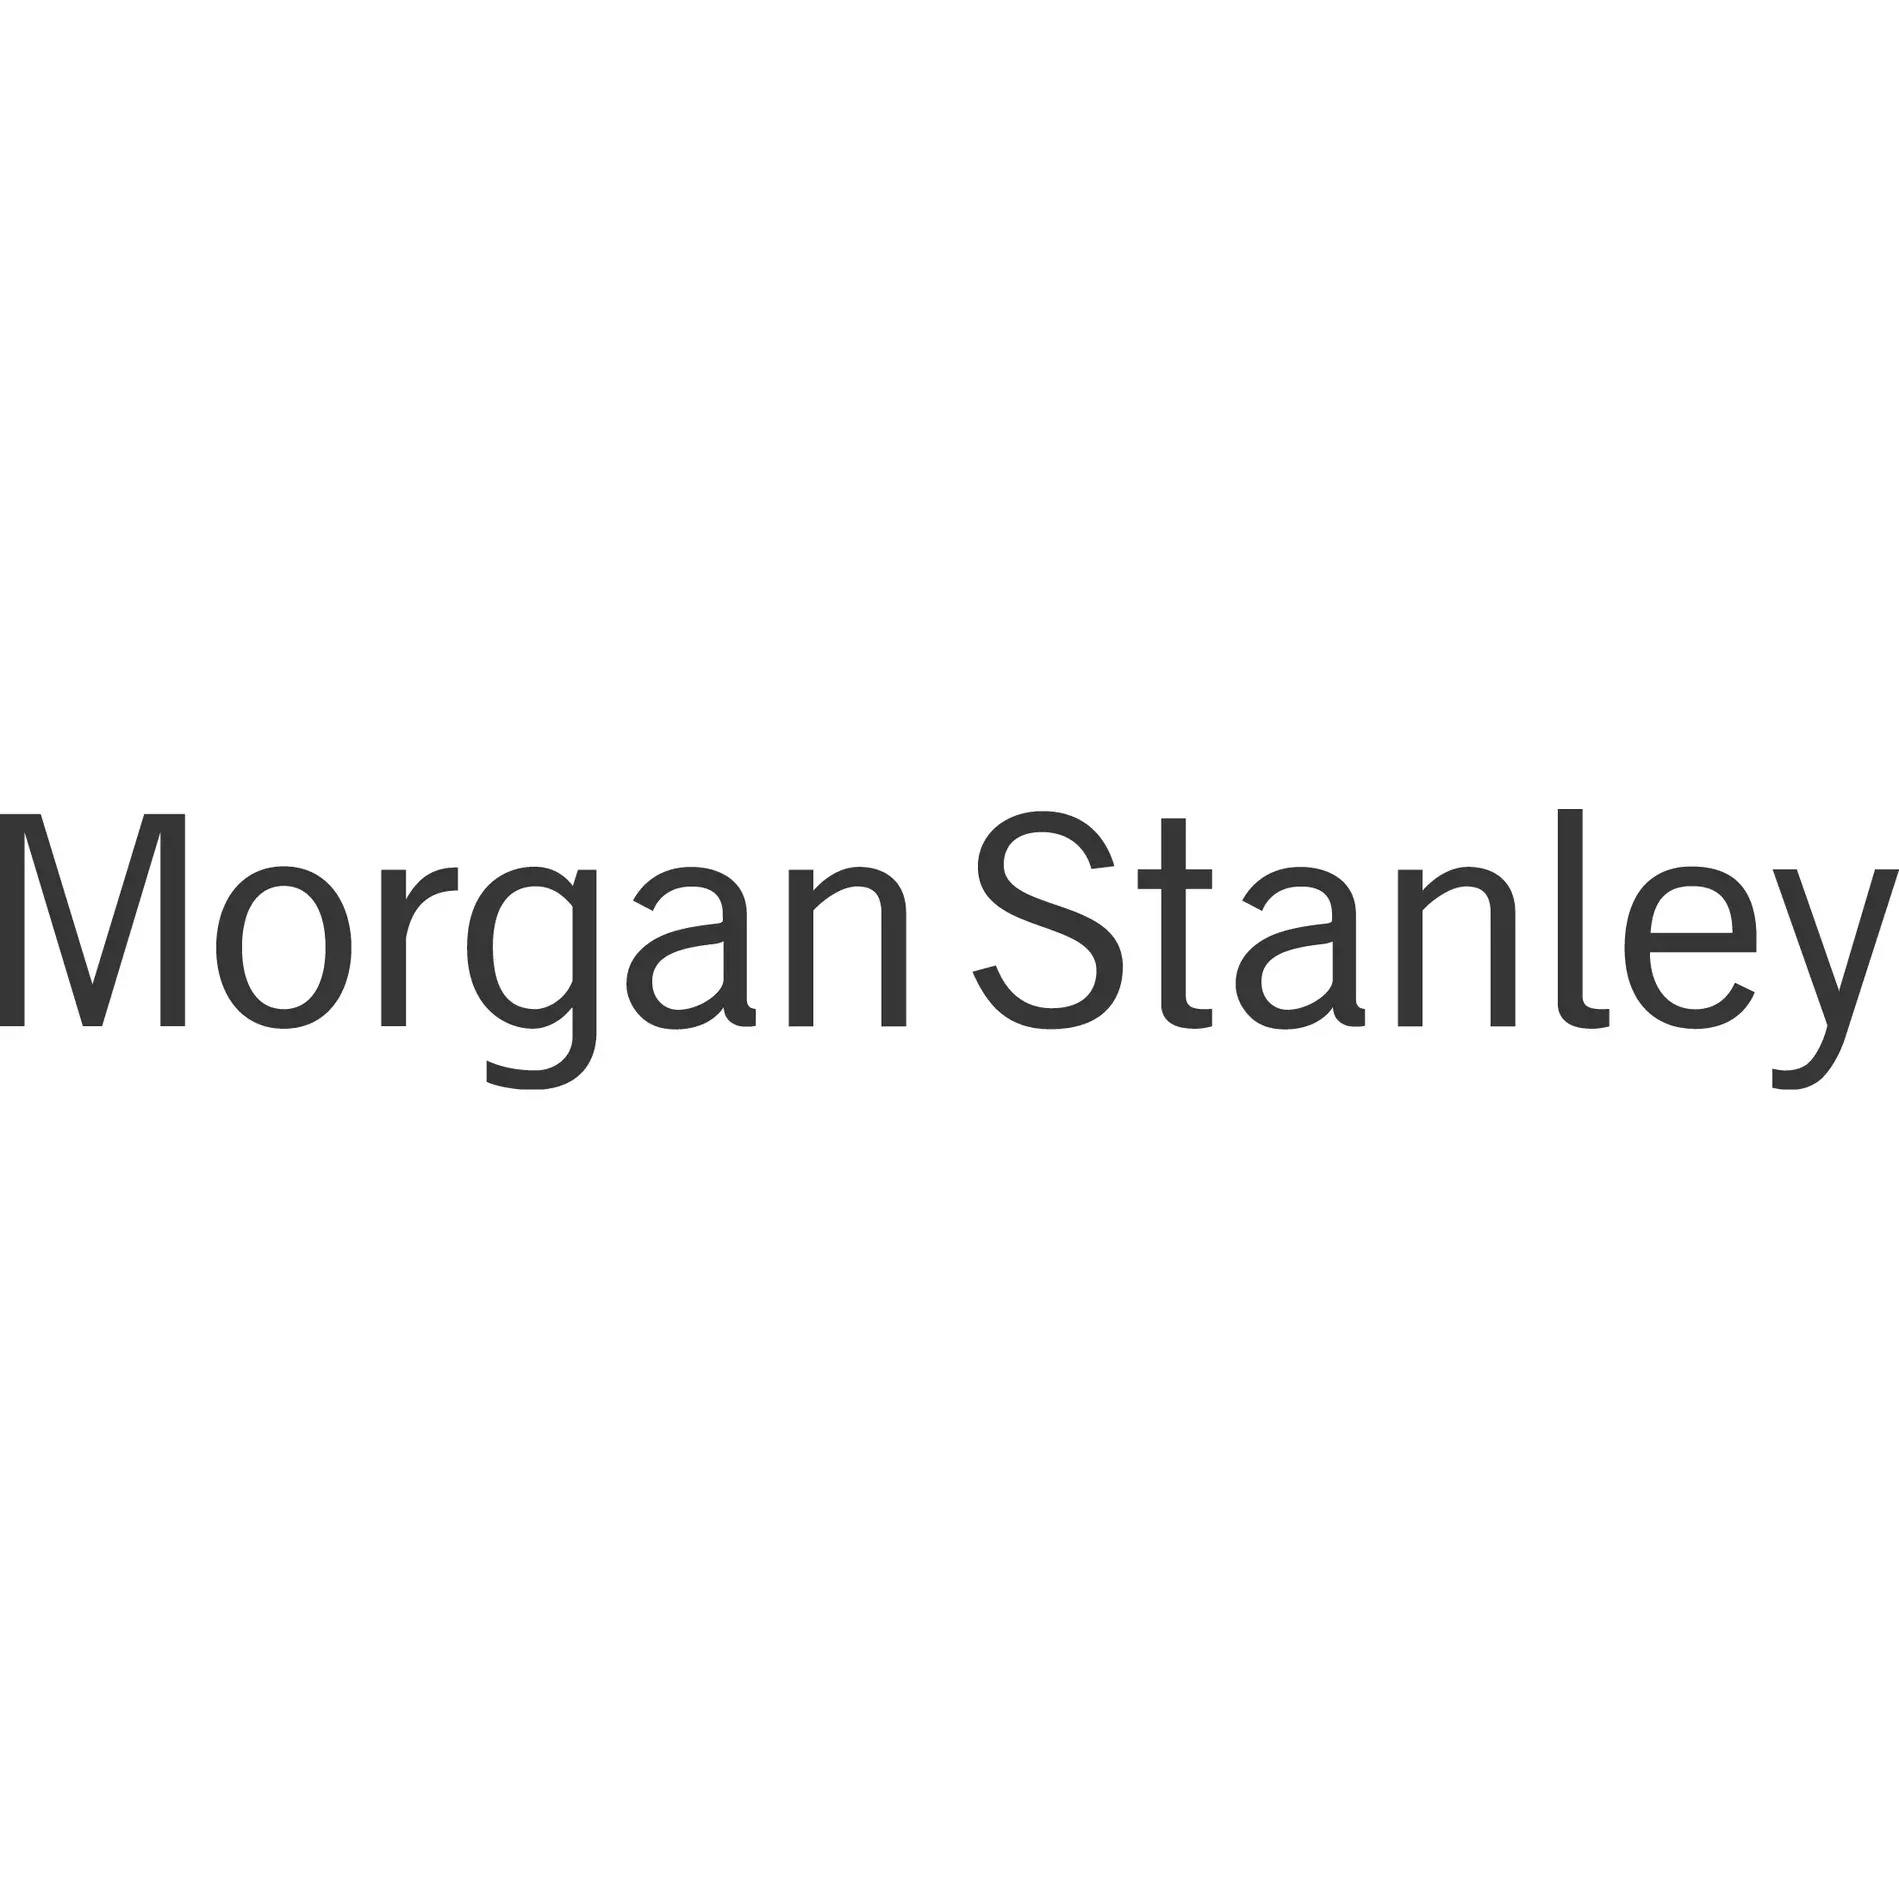 The Moretti Group - Morgan Stanley